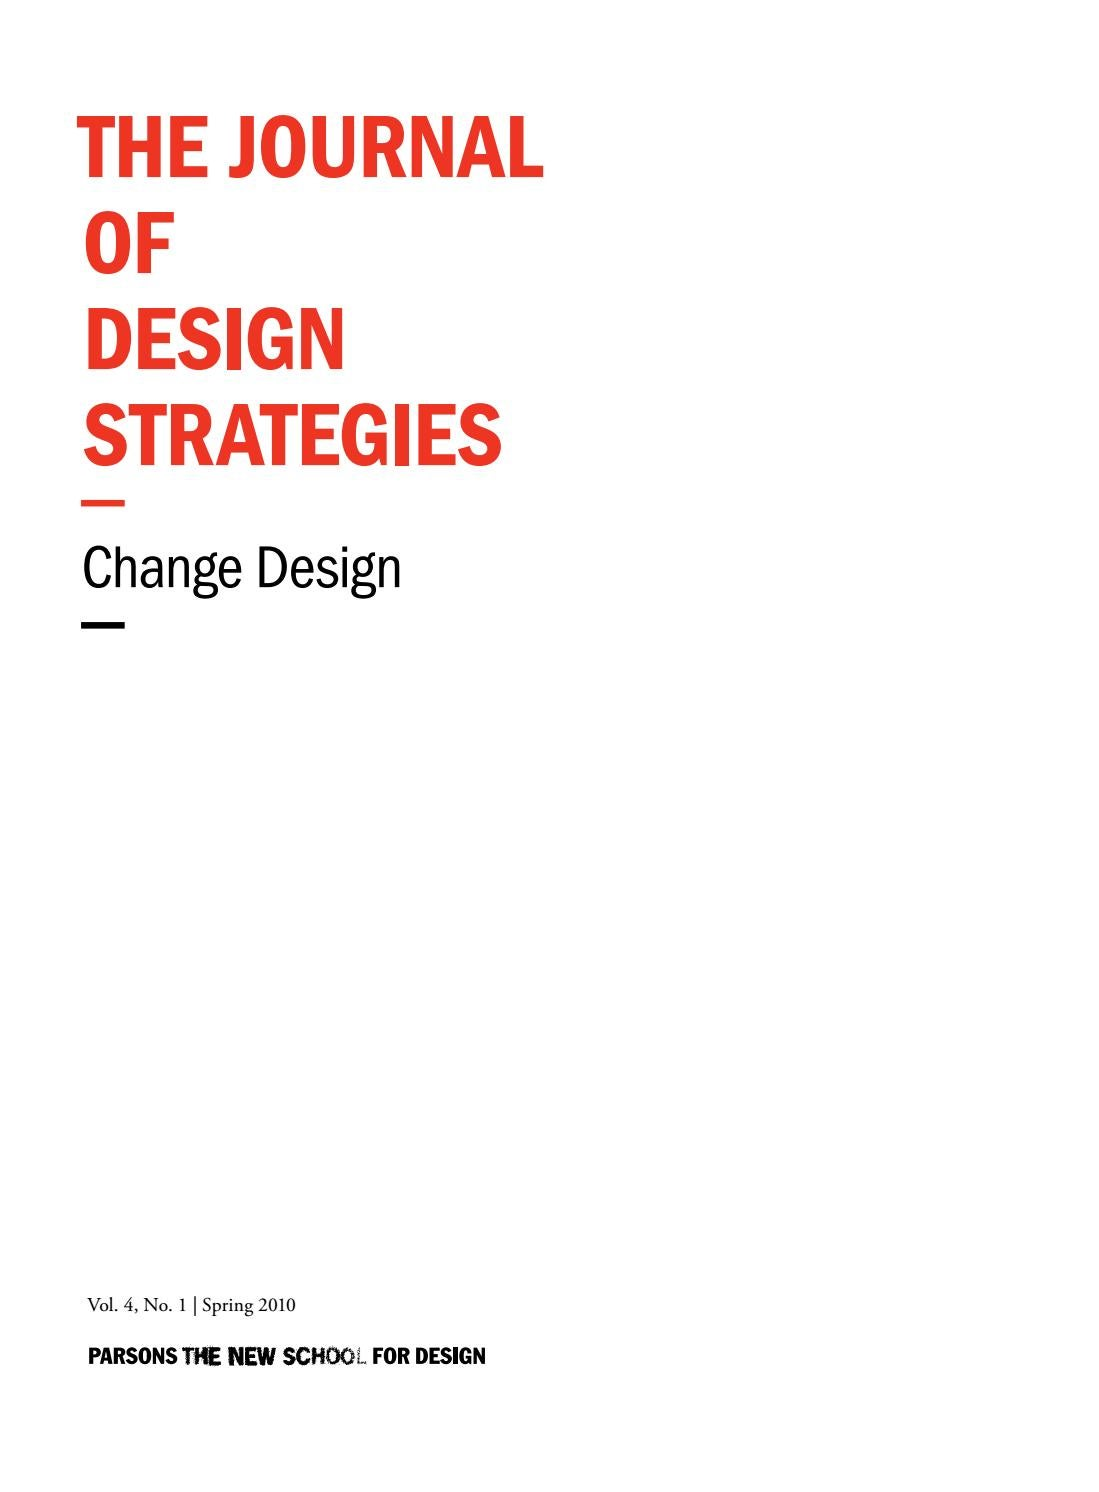 The Journal Of Design Strategies Volume 4 By Johnny 5 No Disassemble Advanced Irules An Abstract View Issuu